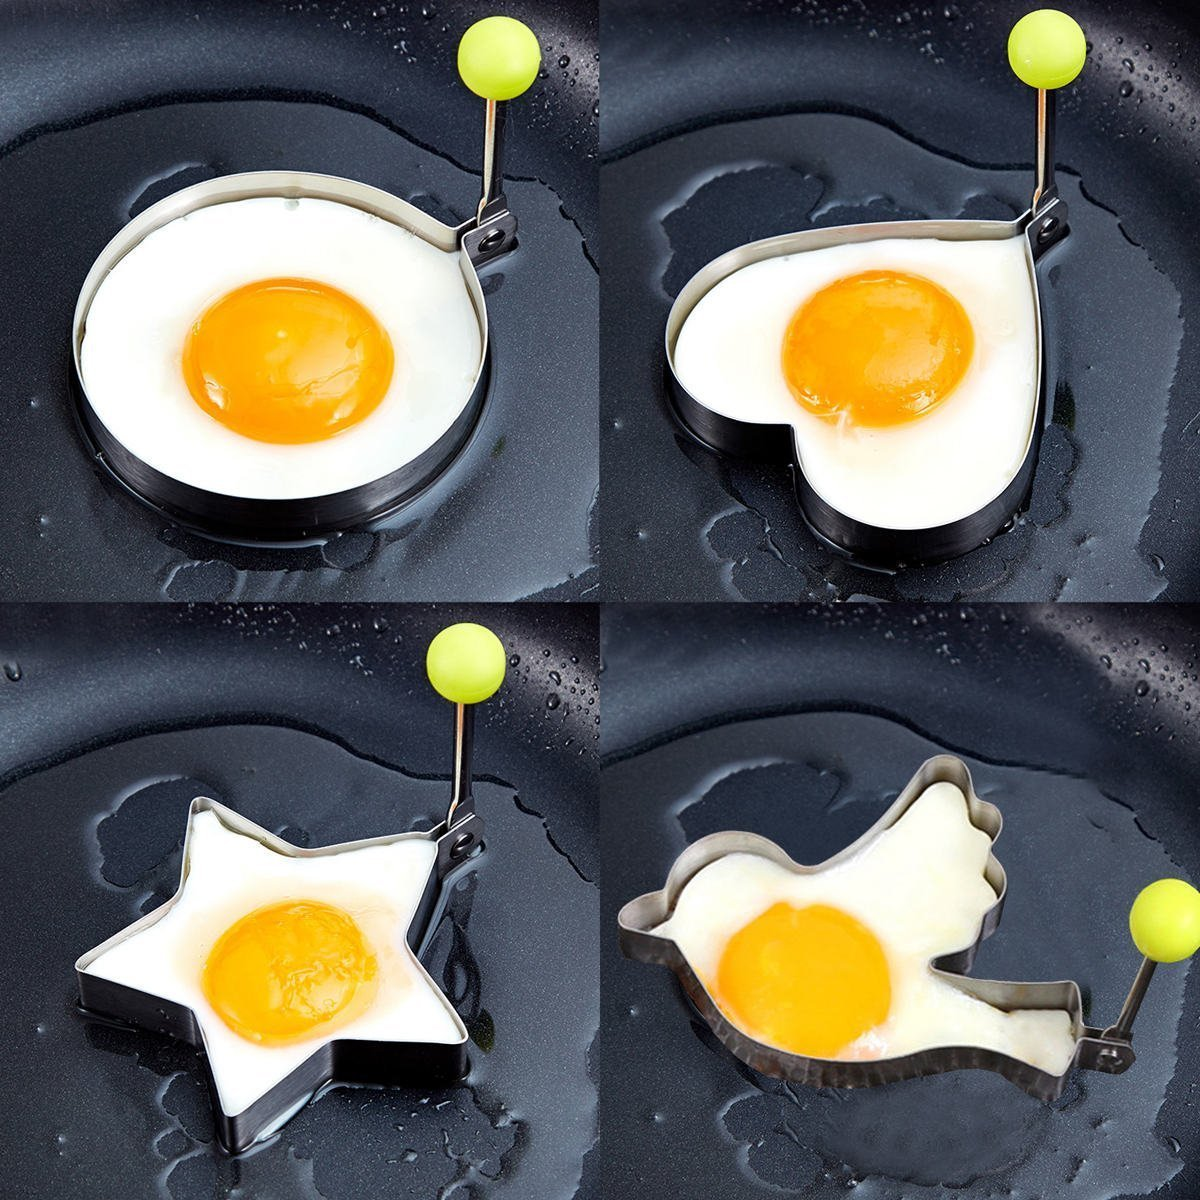 Egg poacher- 8pcs Different Shapes Stainless Steel Fried Egg Molds with 1pc Silicone Pastry Brush - Set of 9 by PNBB (Image #6)